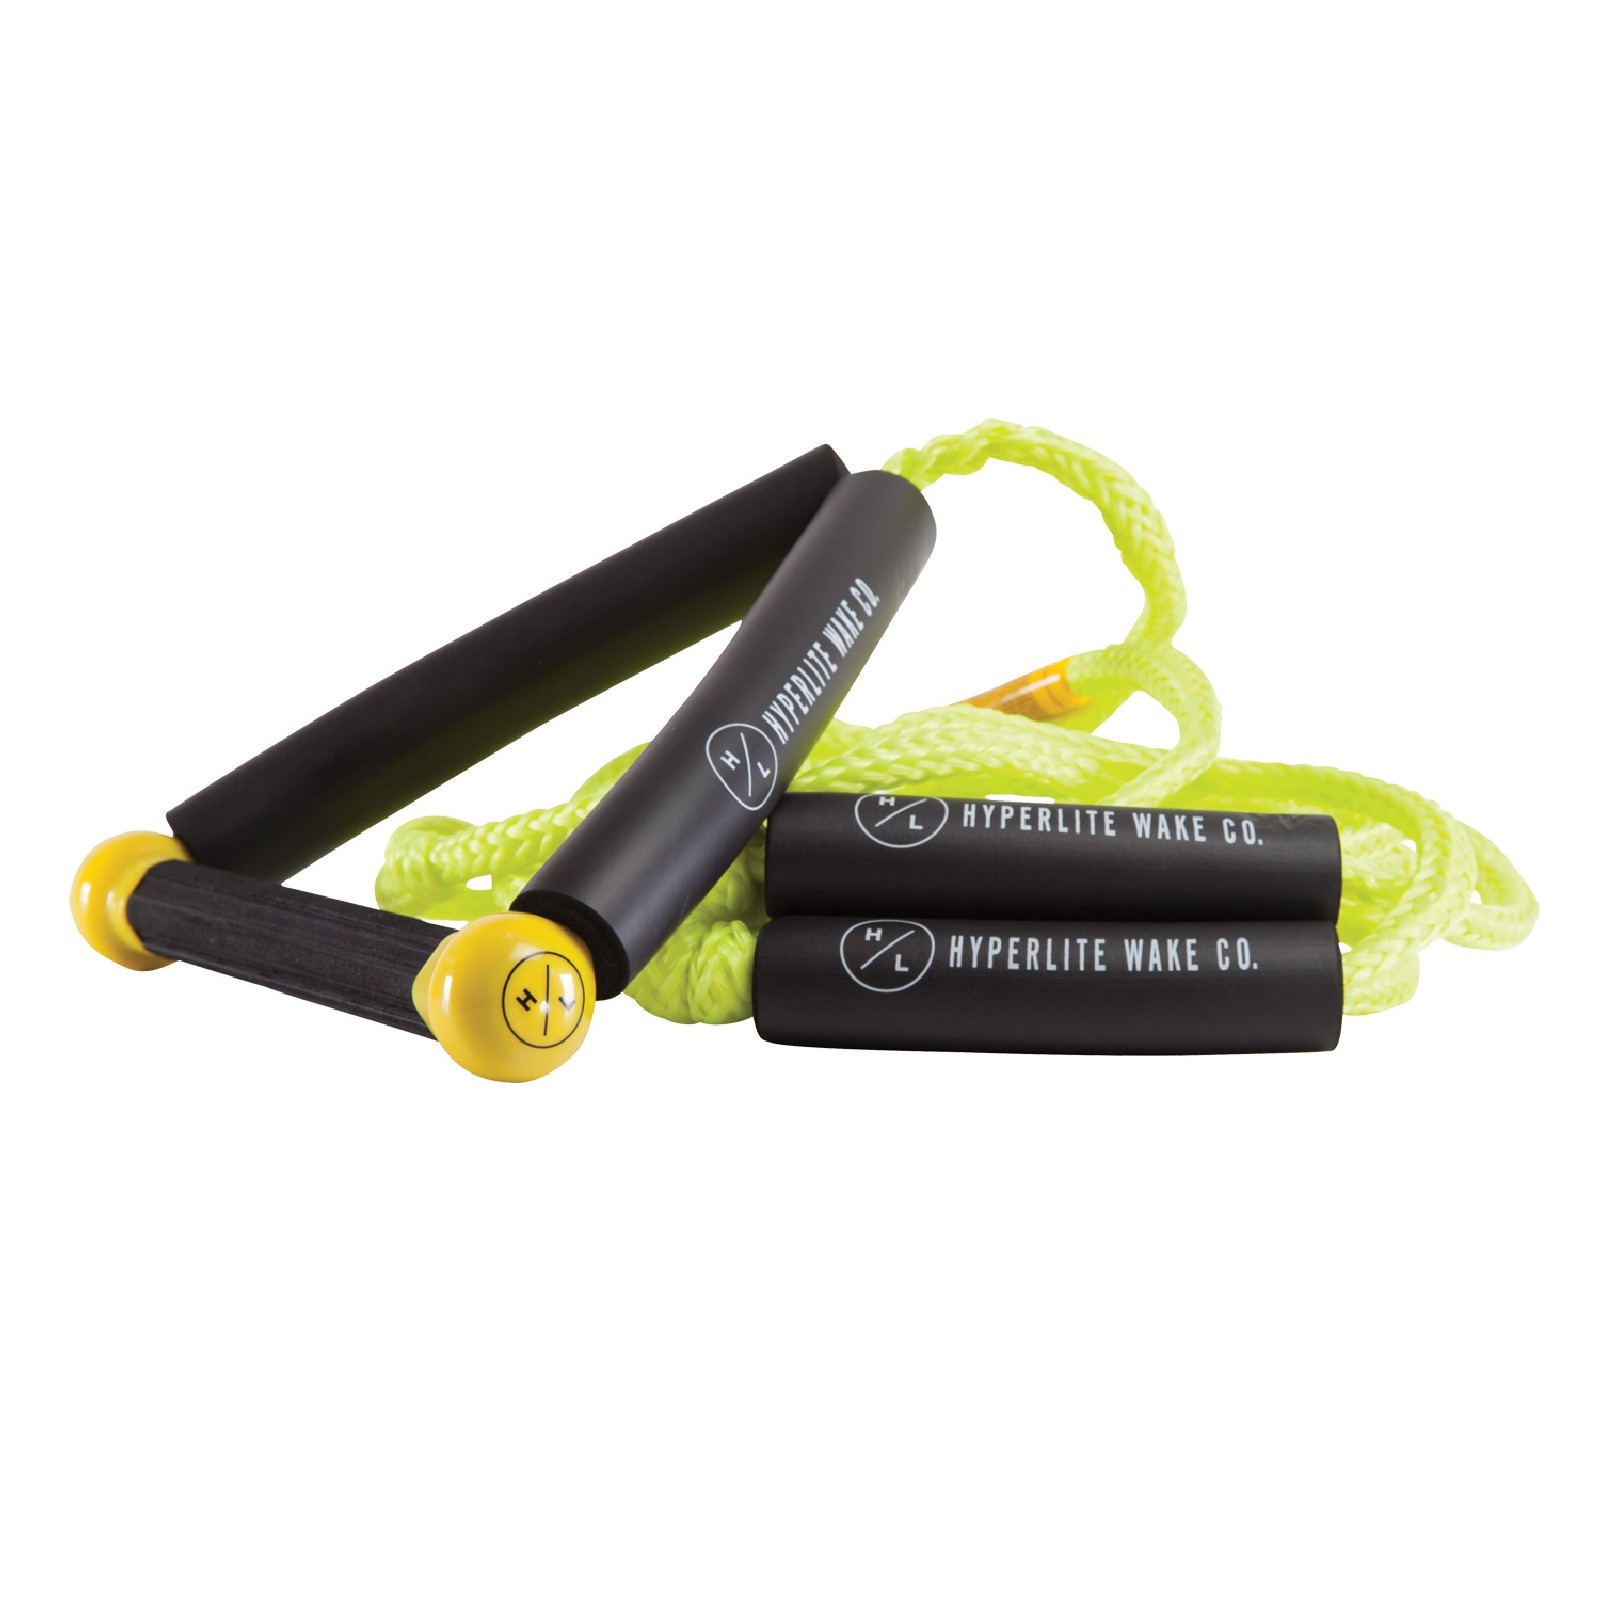 25' FT SURF ROPE W/HANDLE PACKAGE - YELLOW HYPERLITE 2019